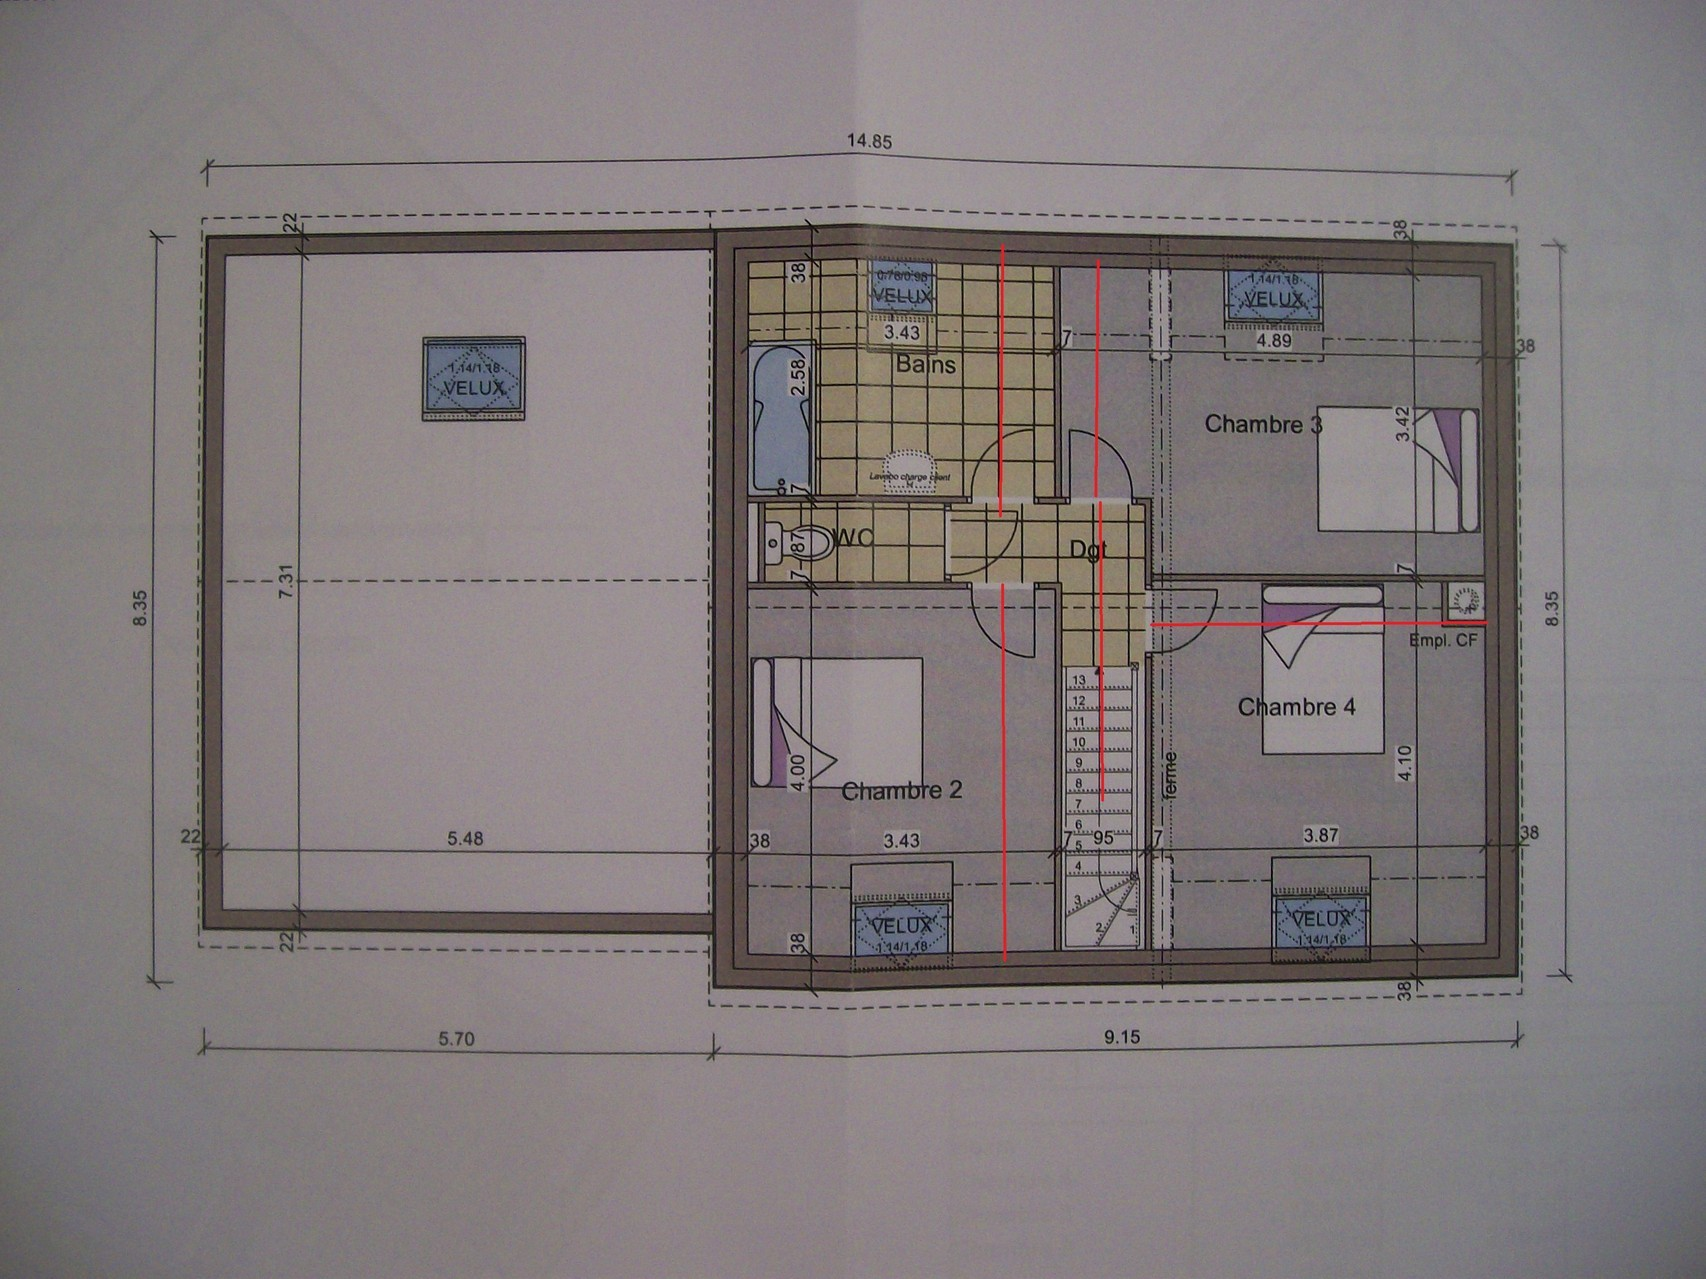 faire un plan d appartement en ligne circulation plan maison circulation ...